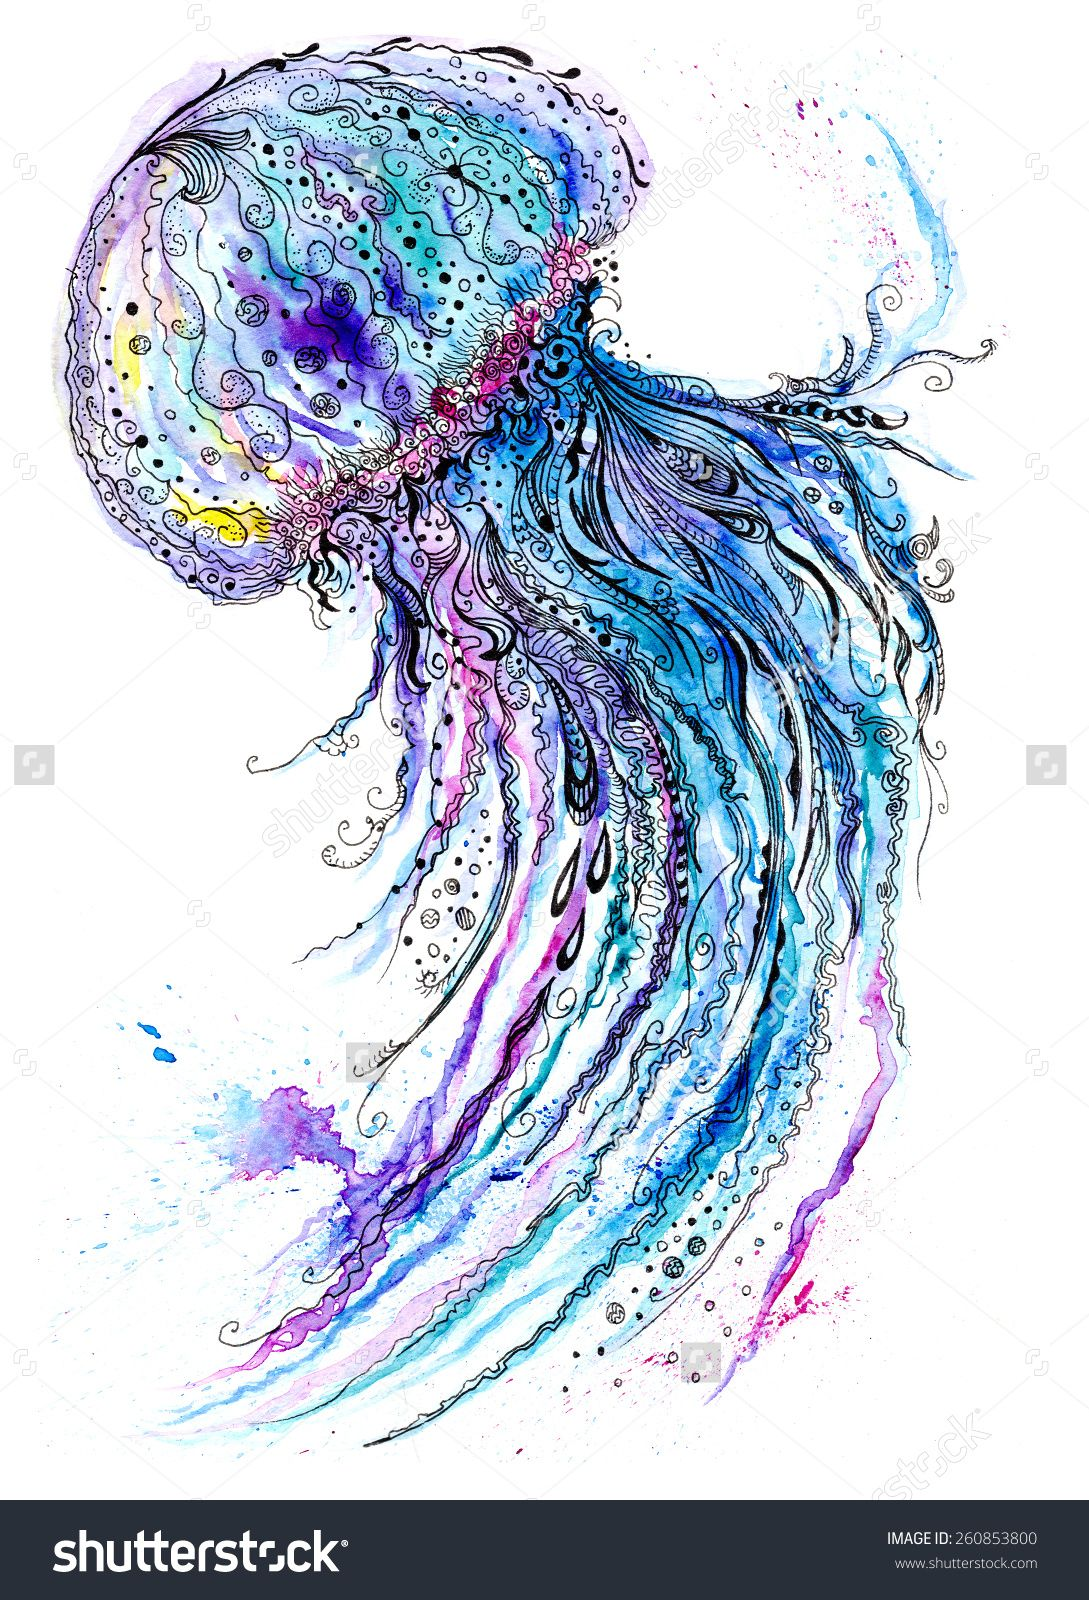 Jelly Fish Watercolor And Ink Painting Creative Sea Life Art